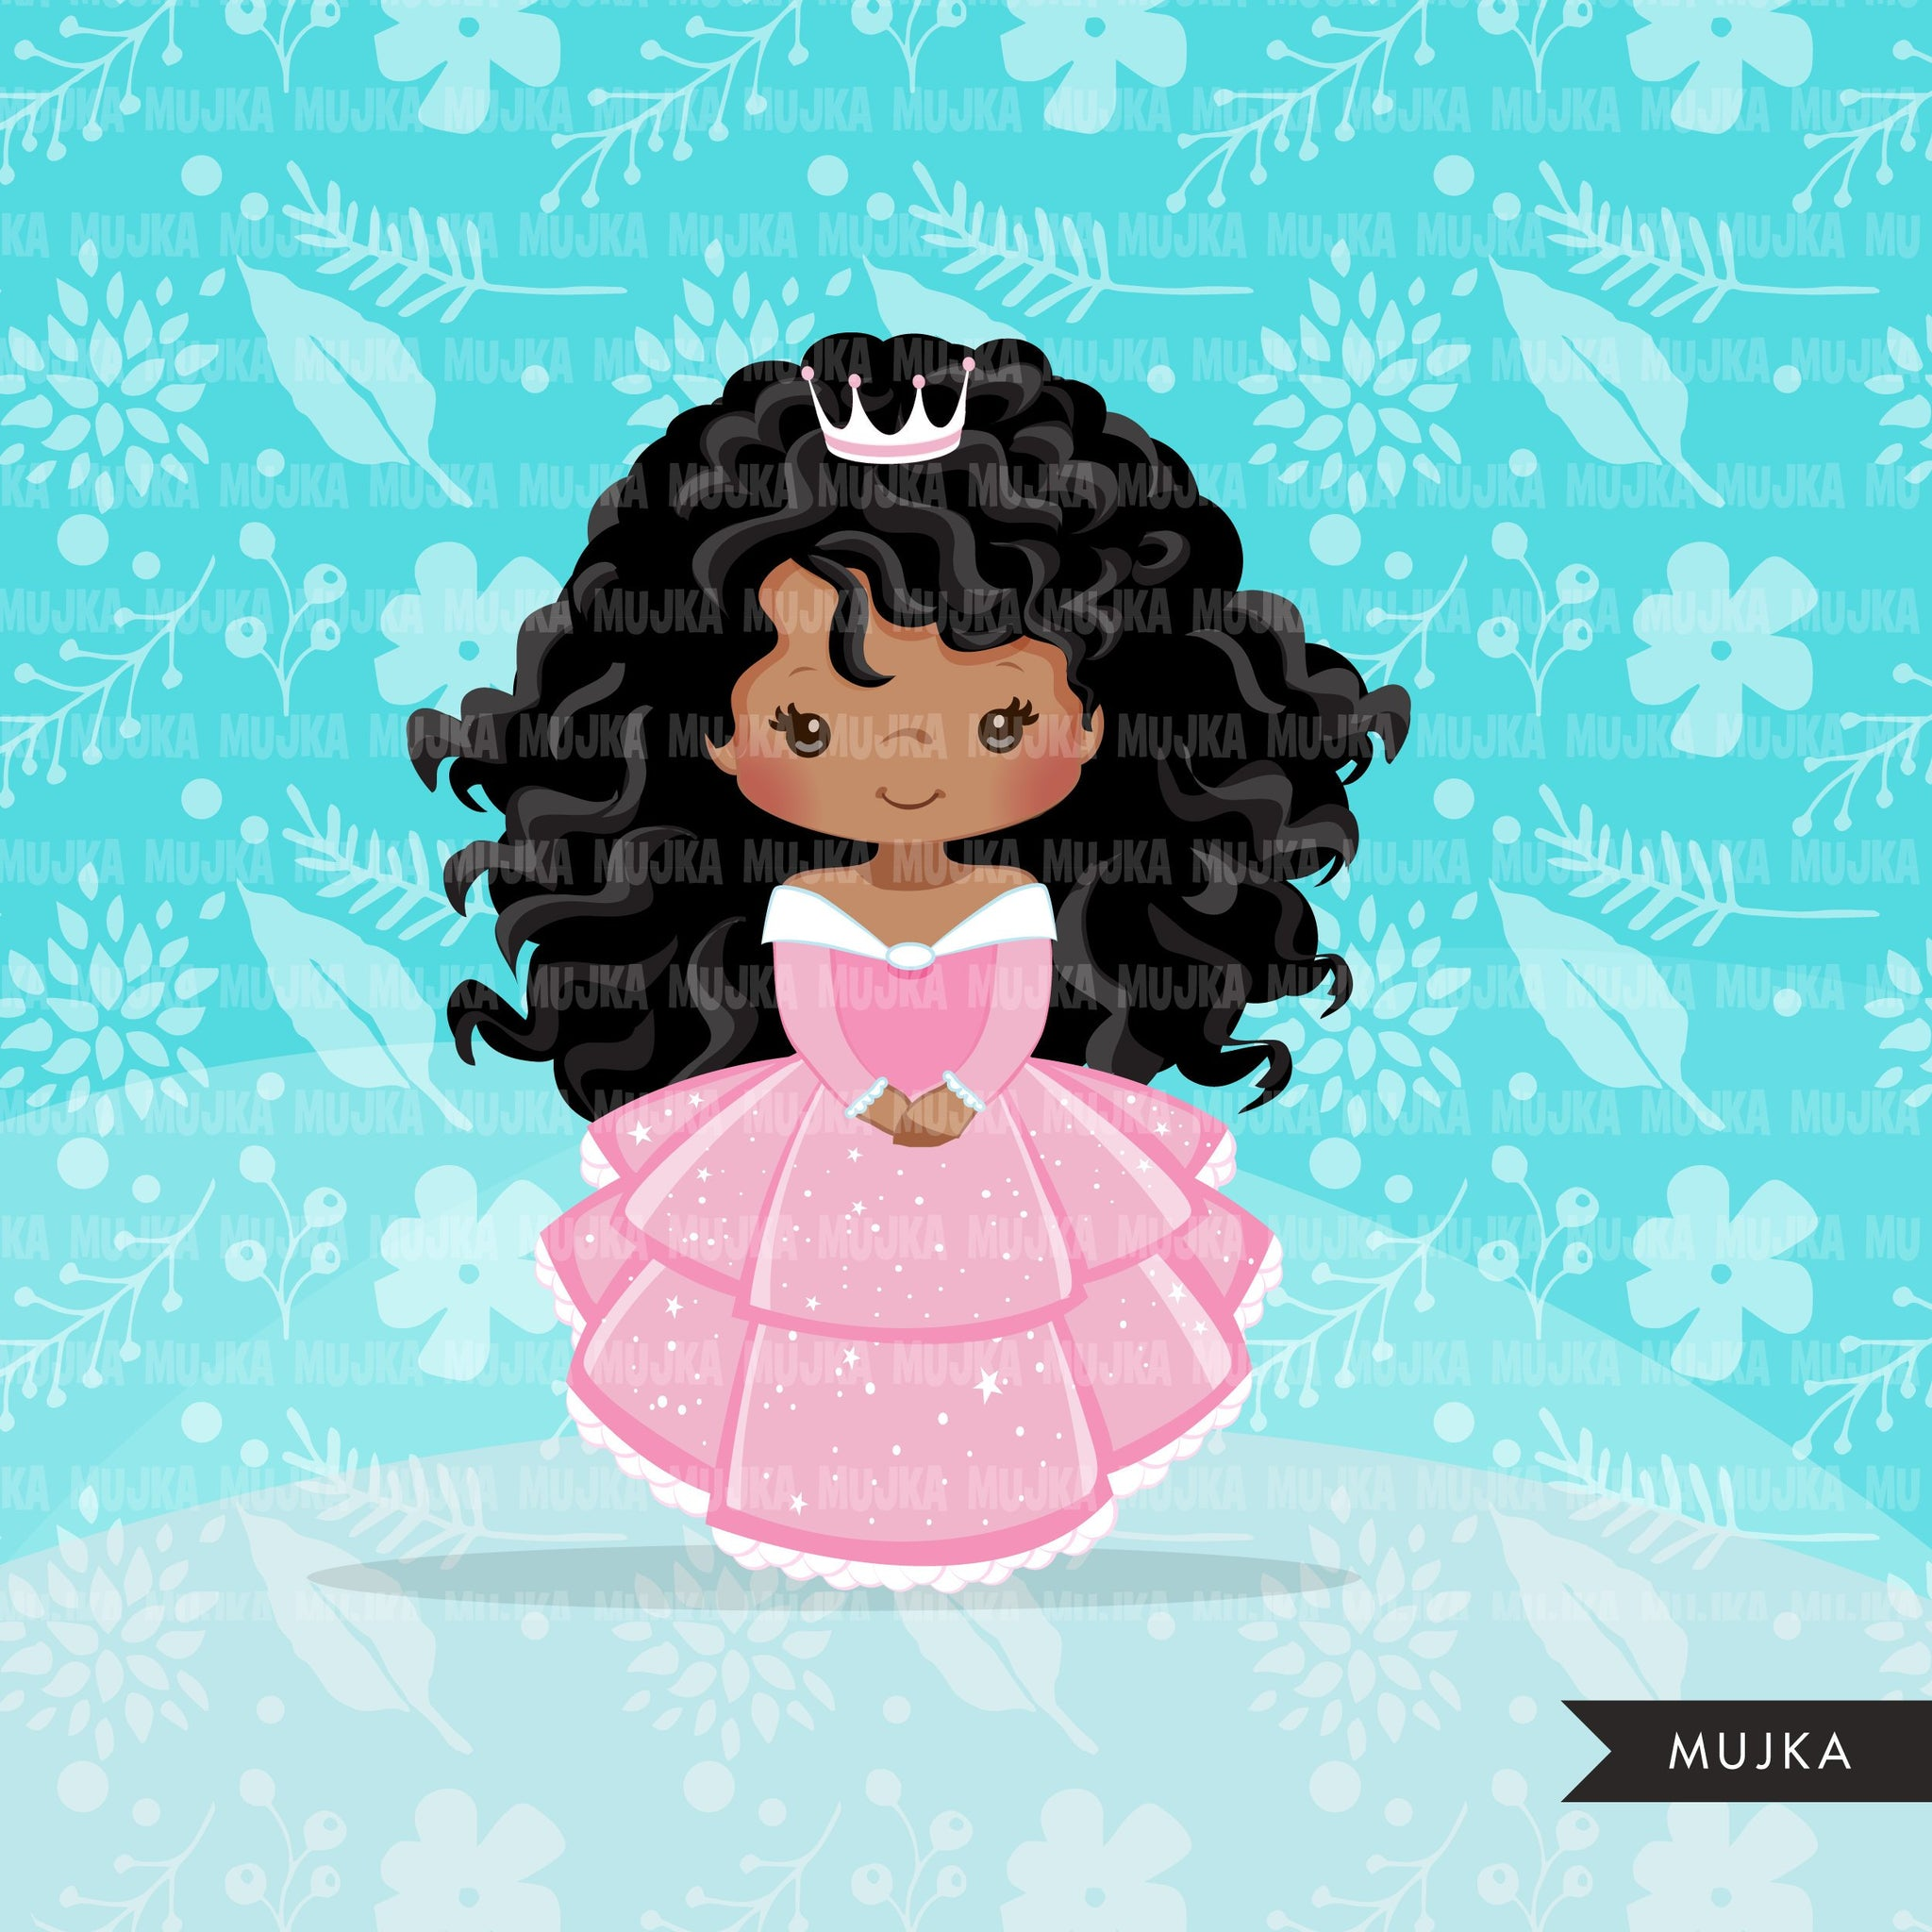 Black Princess clipart, fairy tale graphics, girls story book, pink princess dress, commercial use clip art